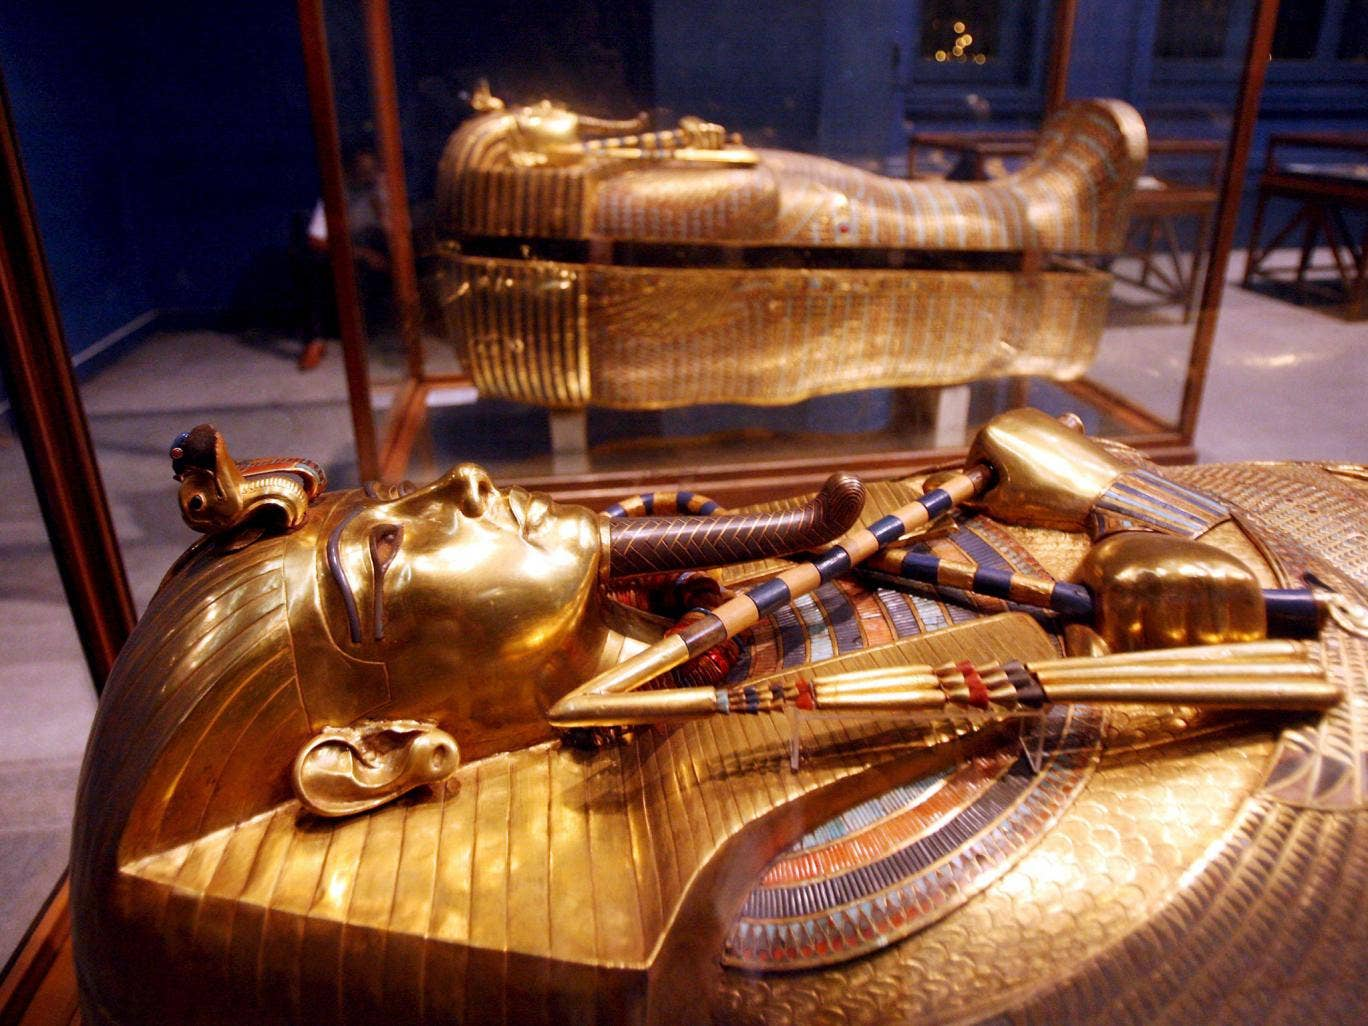 Golden wonder: Now is the time to take advantage of the lack of crowds and visit Cairo's Egyptian Museum